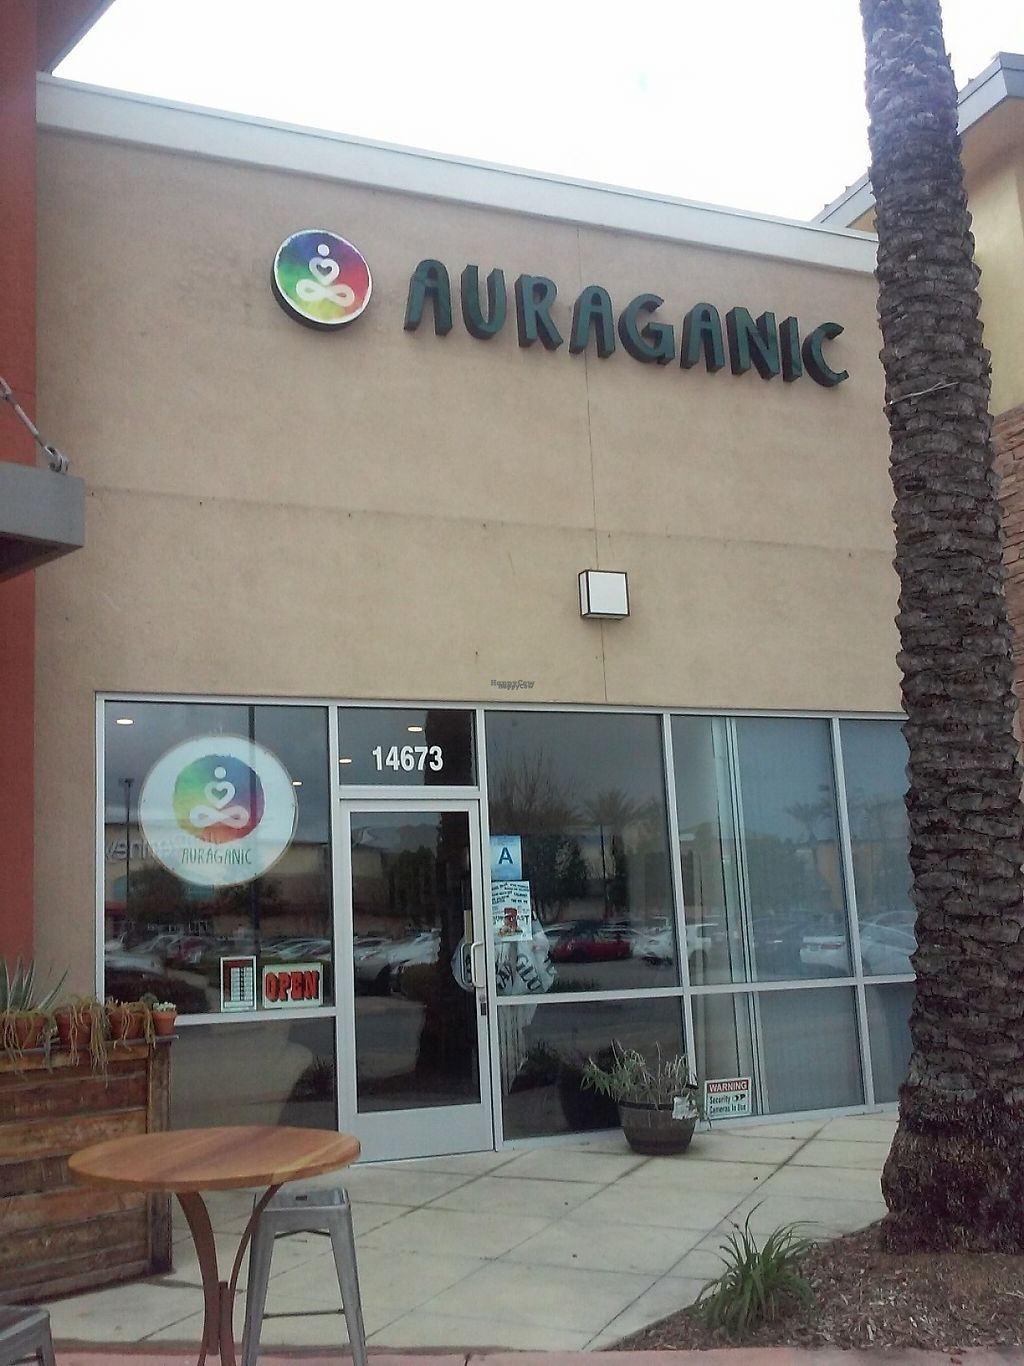 """Photo of Auraganic Juicery  by <a href=""""/members/profile/anastronomy"""">anastronomy</a> <br/>Auraganic is next a yoga studio and near a McDonald's  <br/> February 19, 2017  - <a href='/contact/abuse/image/75964/228014'>Report</a>"""